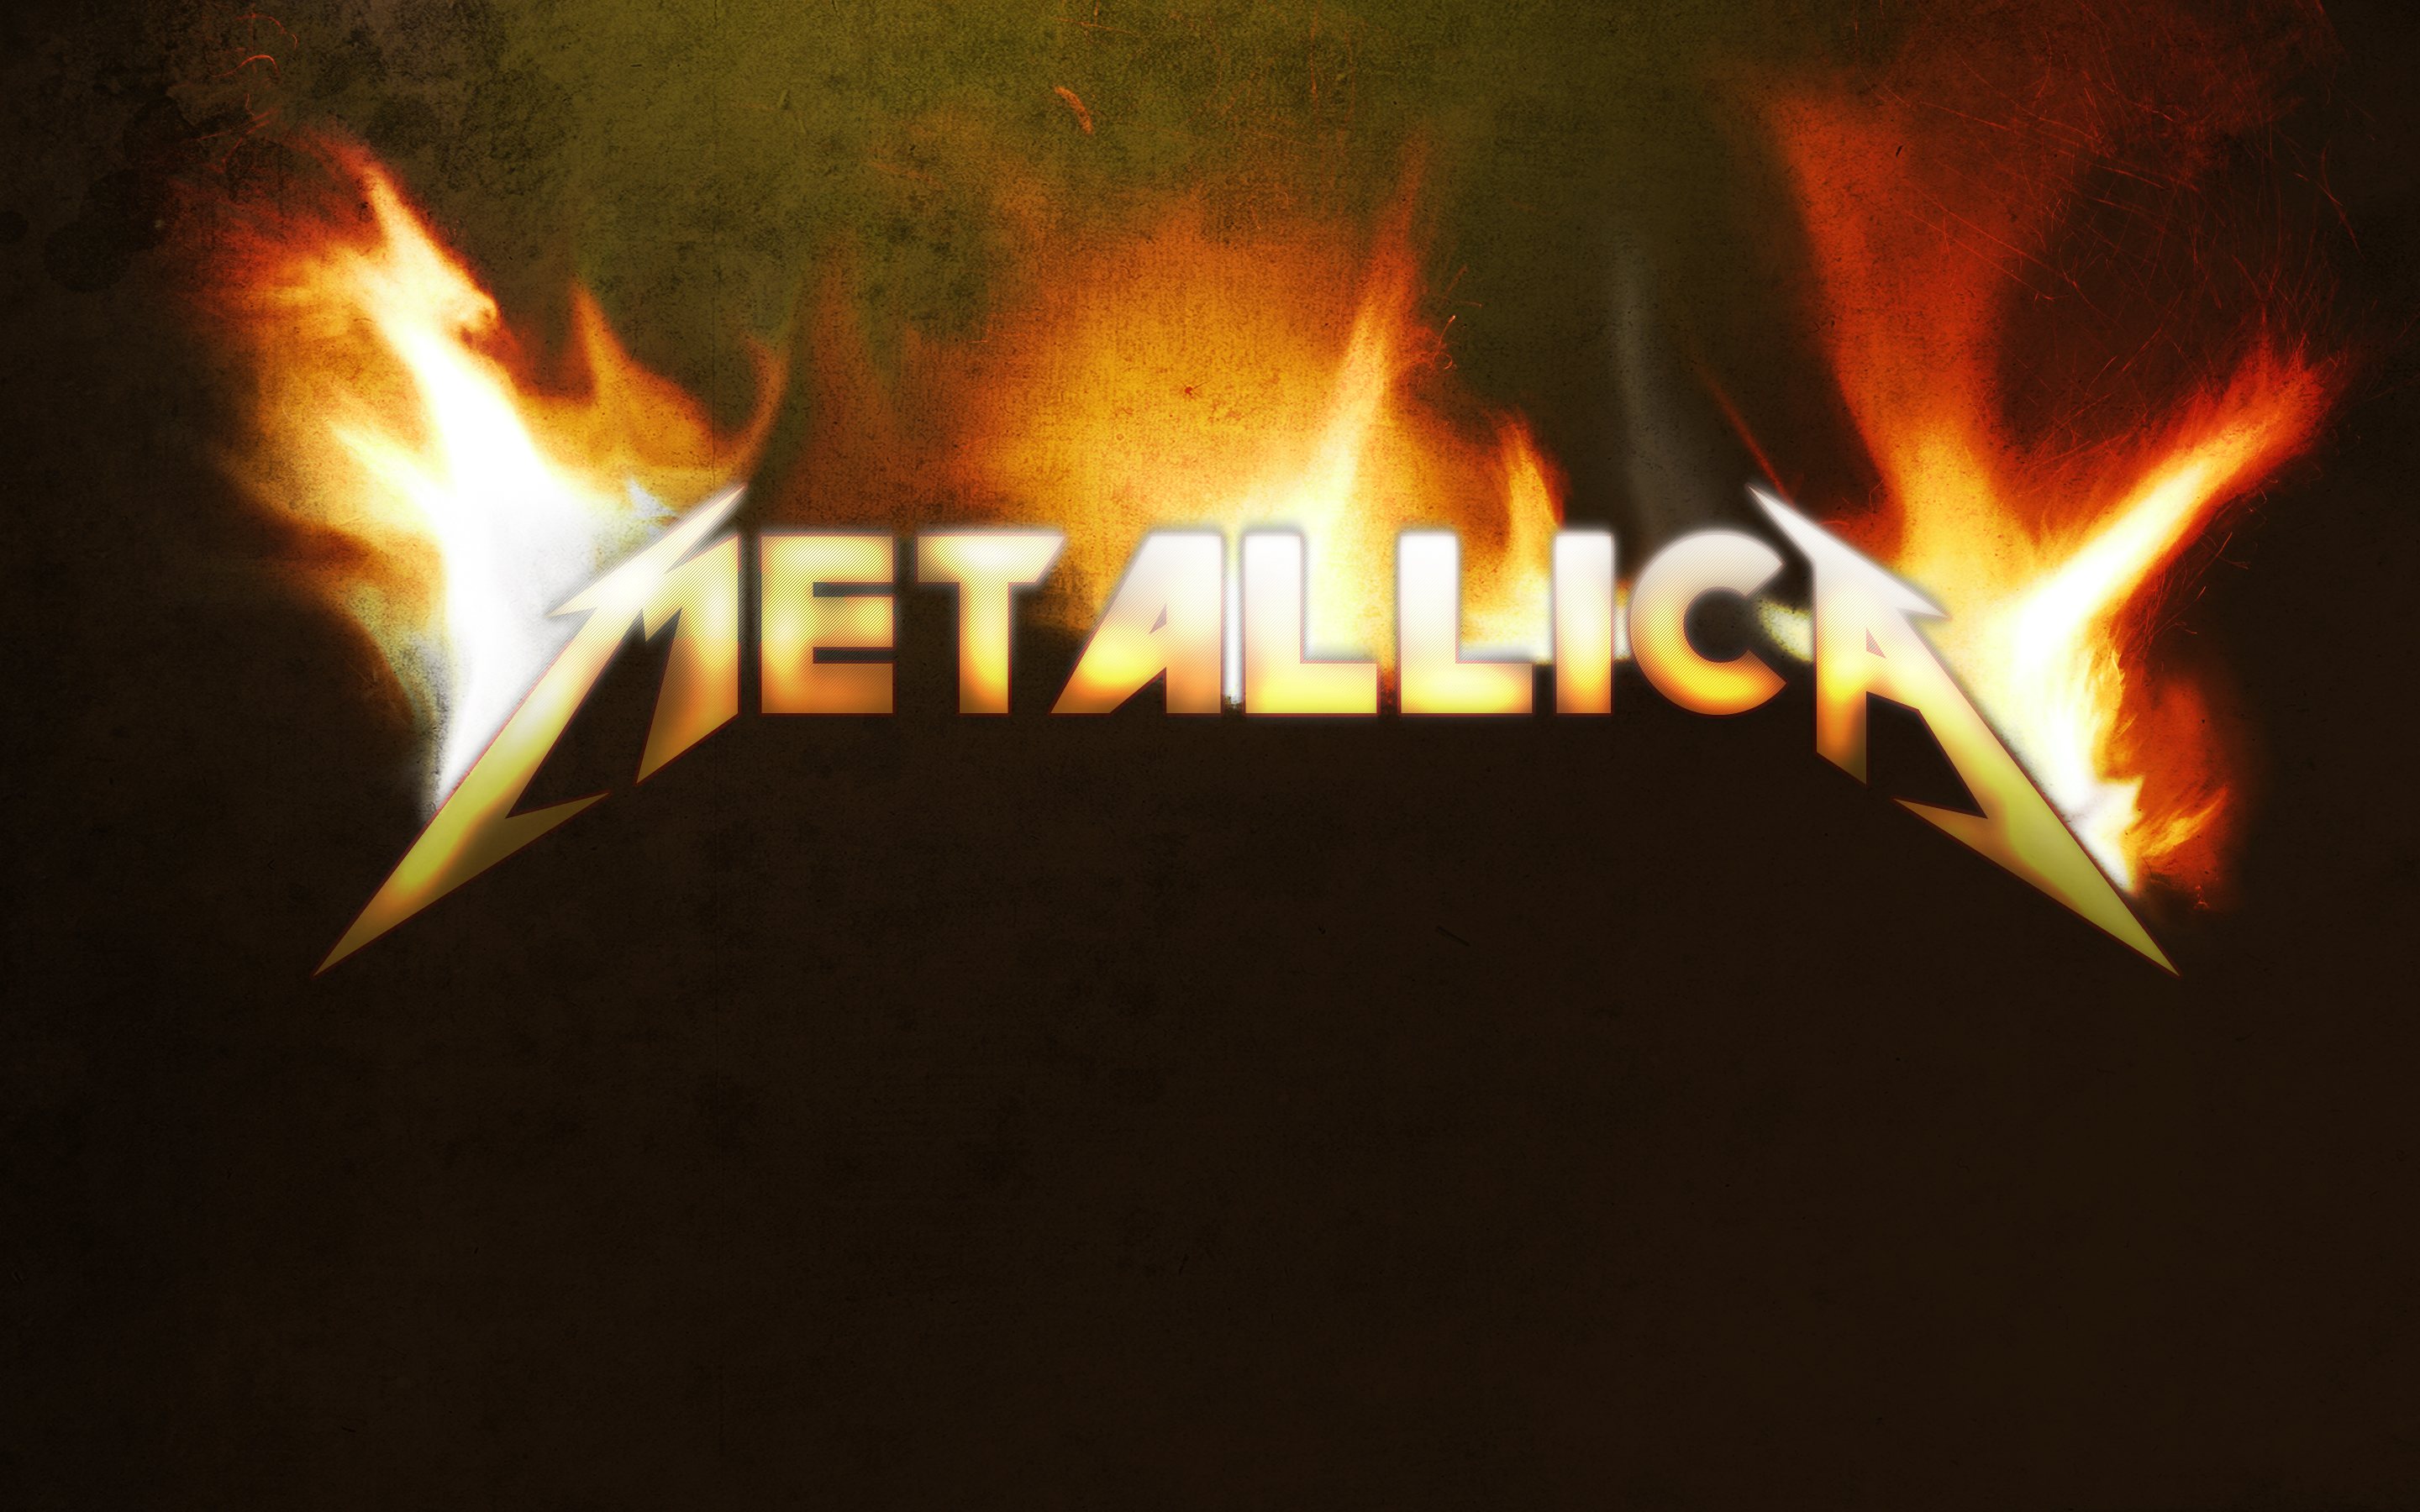 Metallica Wallpapers 33 HD Desktop Wallpapers 2880x1800